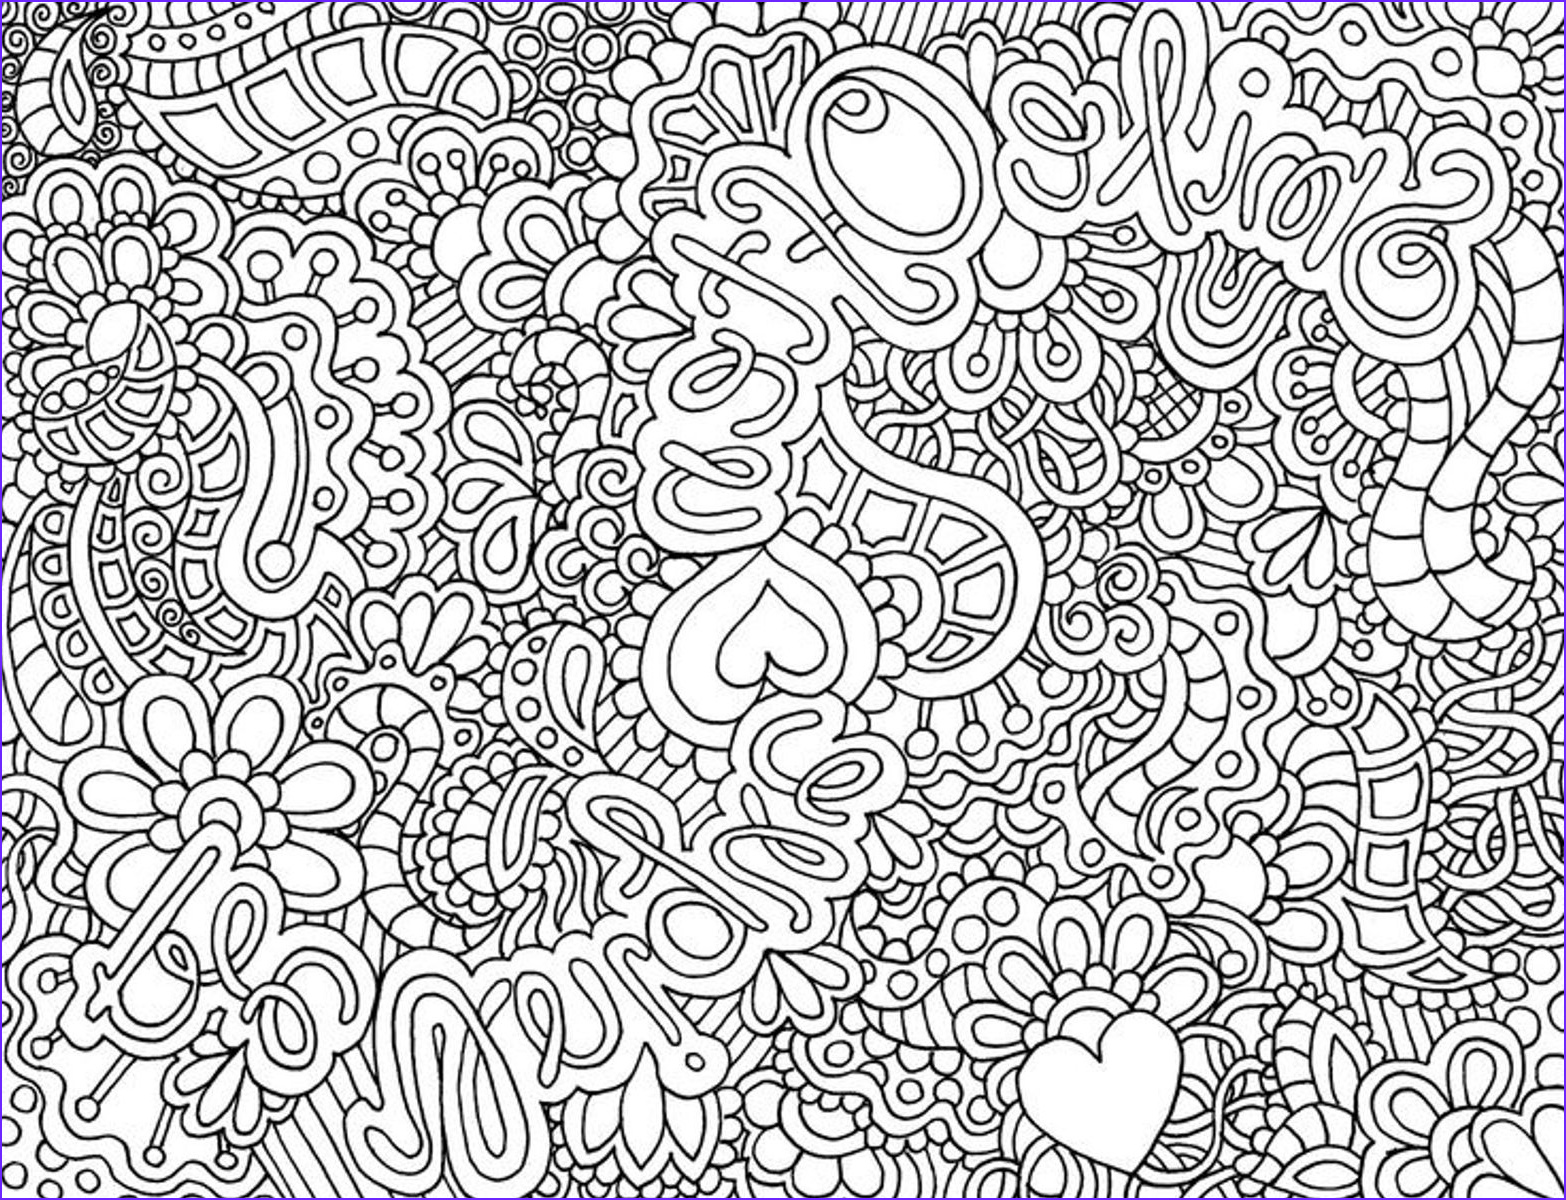 Diffucult Coloring Page Awesome Gallery Difficult Hard Coloring Pages Printable